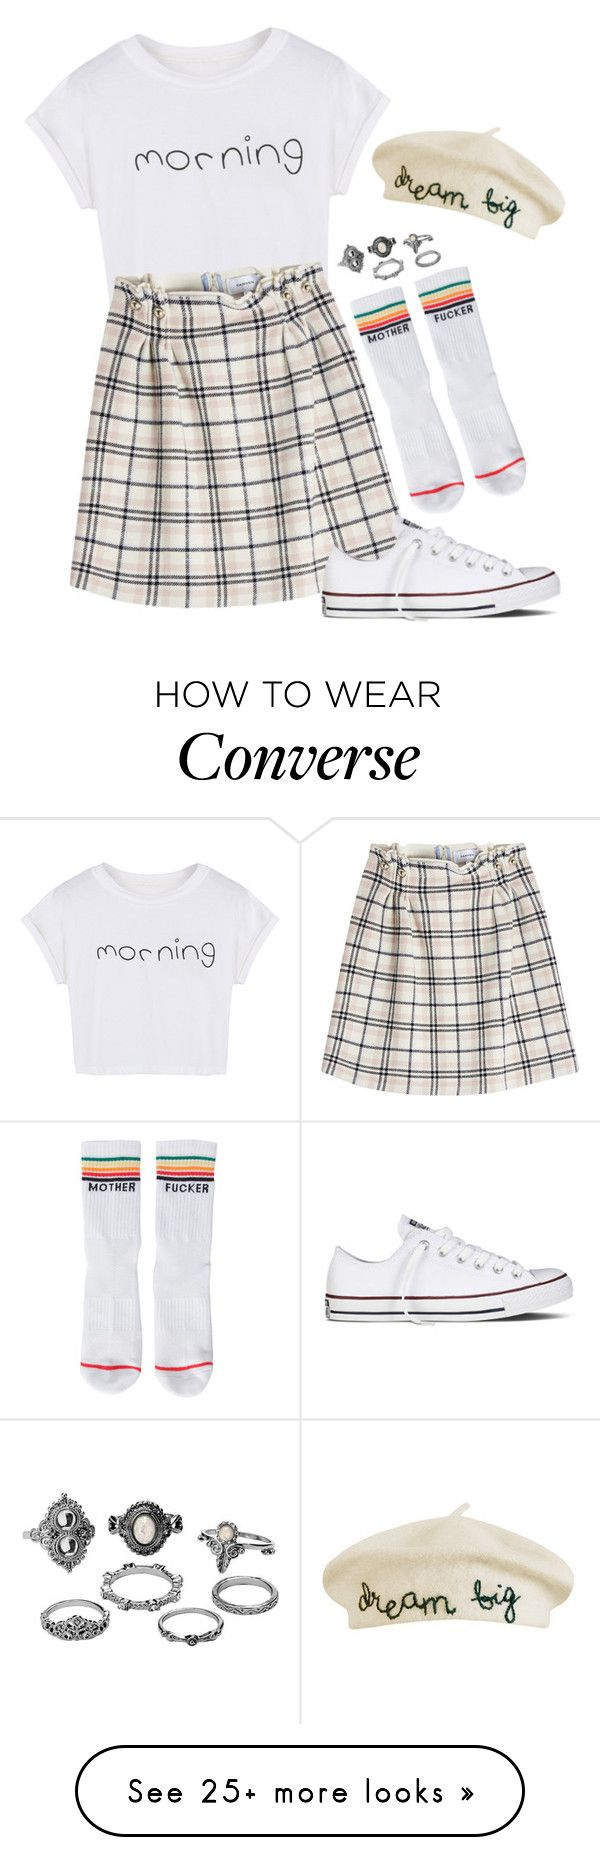 """""""Dream big"""" by bubblegum59 on Polyvore featuring WithChic, Mother, Charlotte Russe, Cynthia Rowley, Carven, Converse, contestentry and NYFWPlaid"""